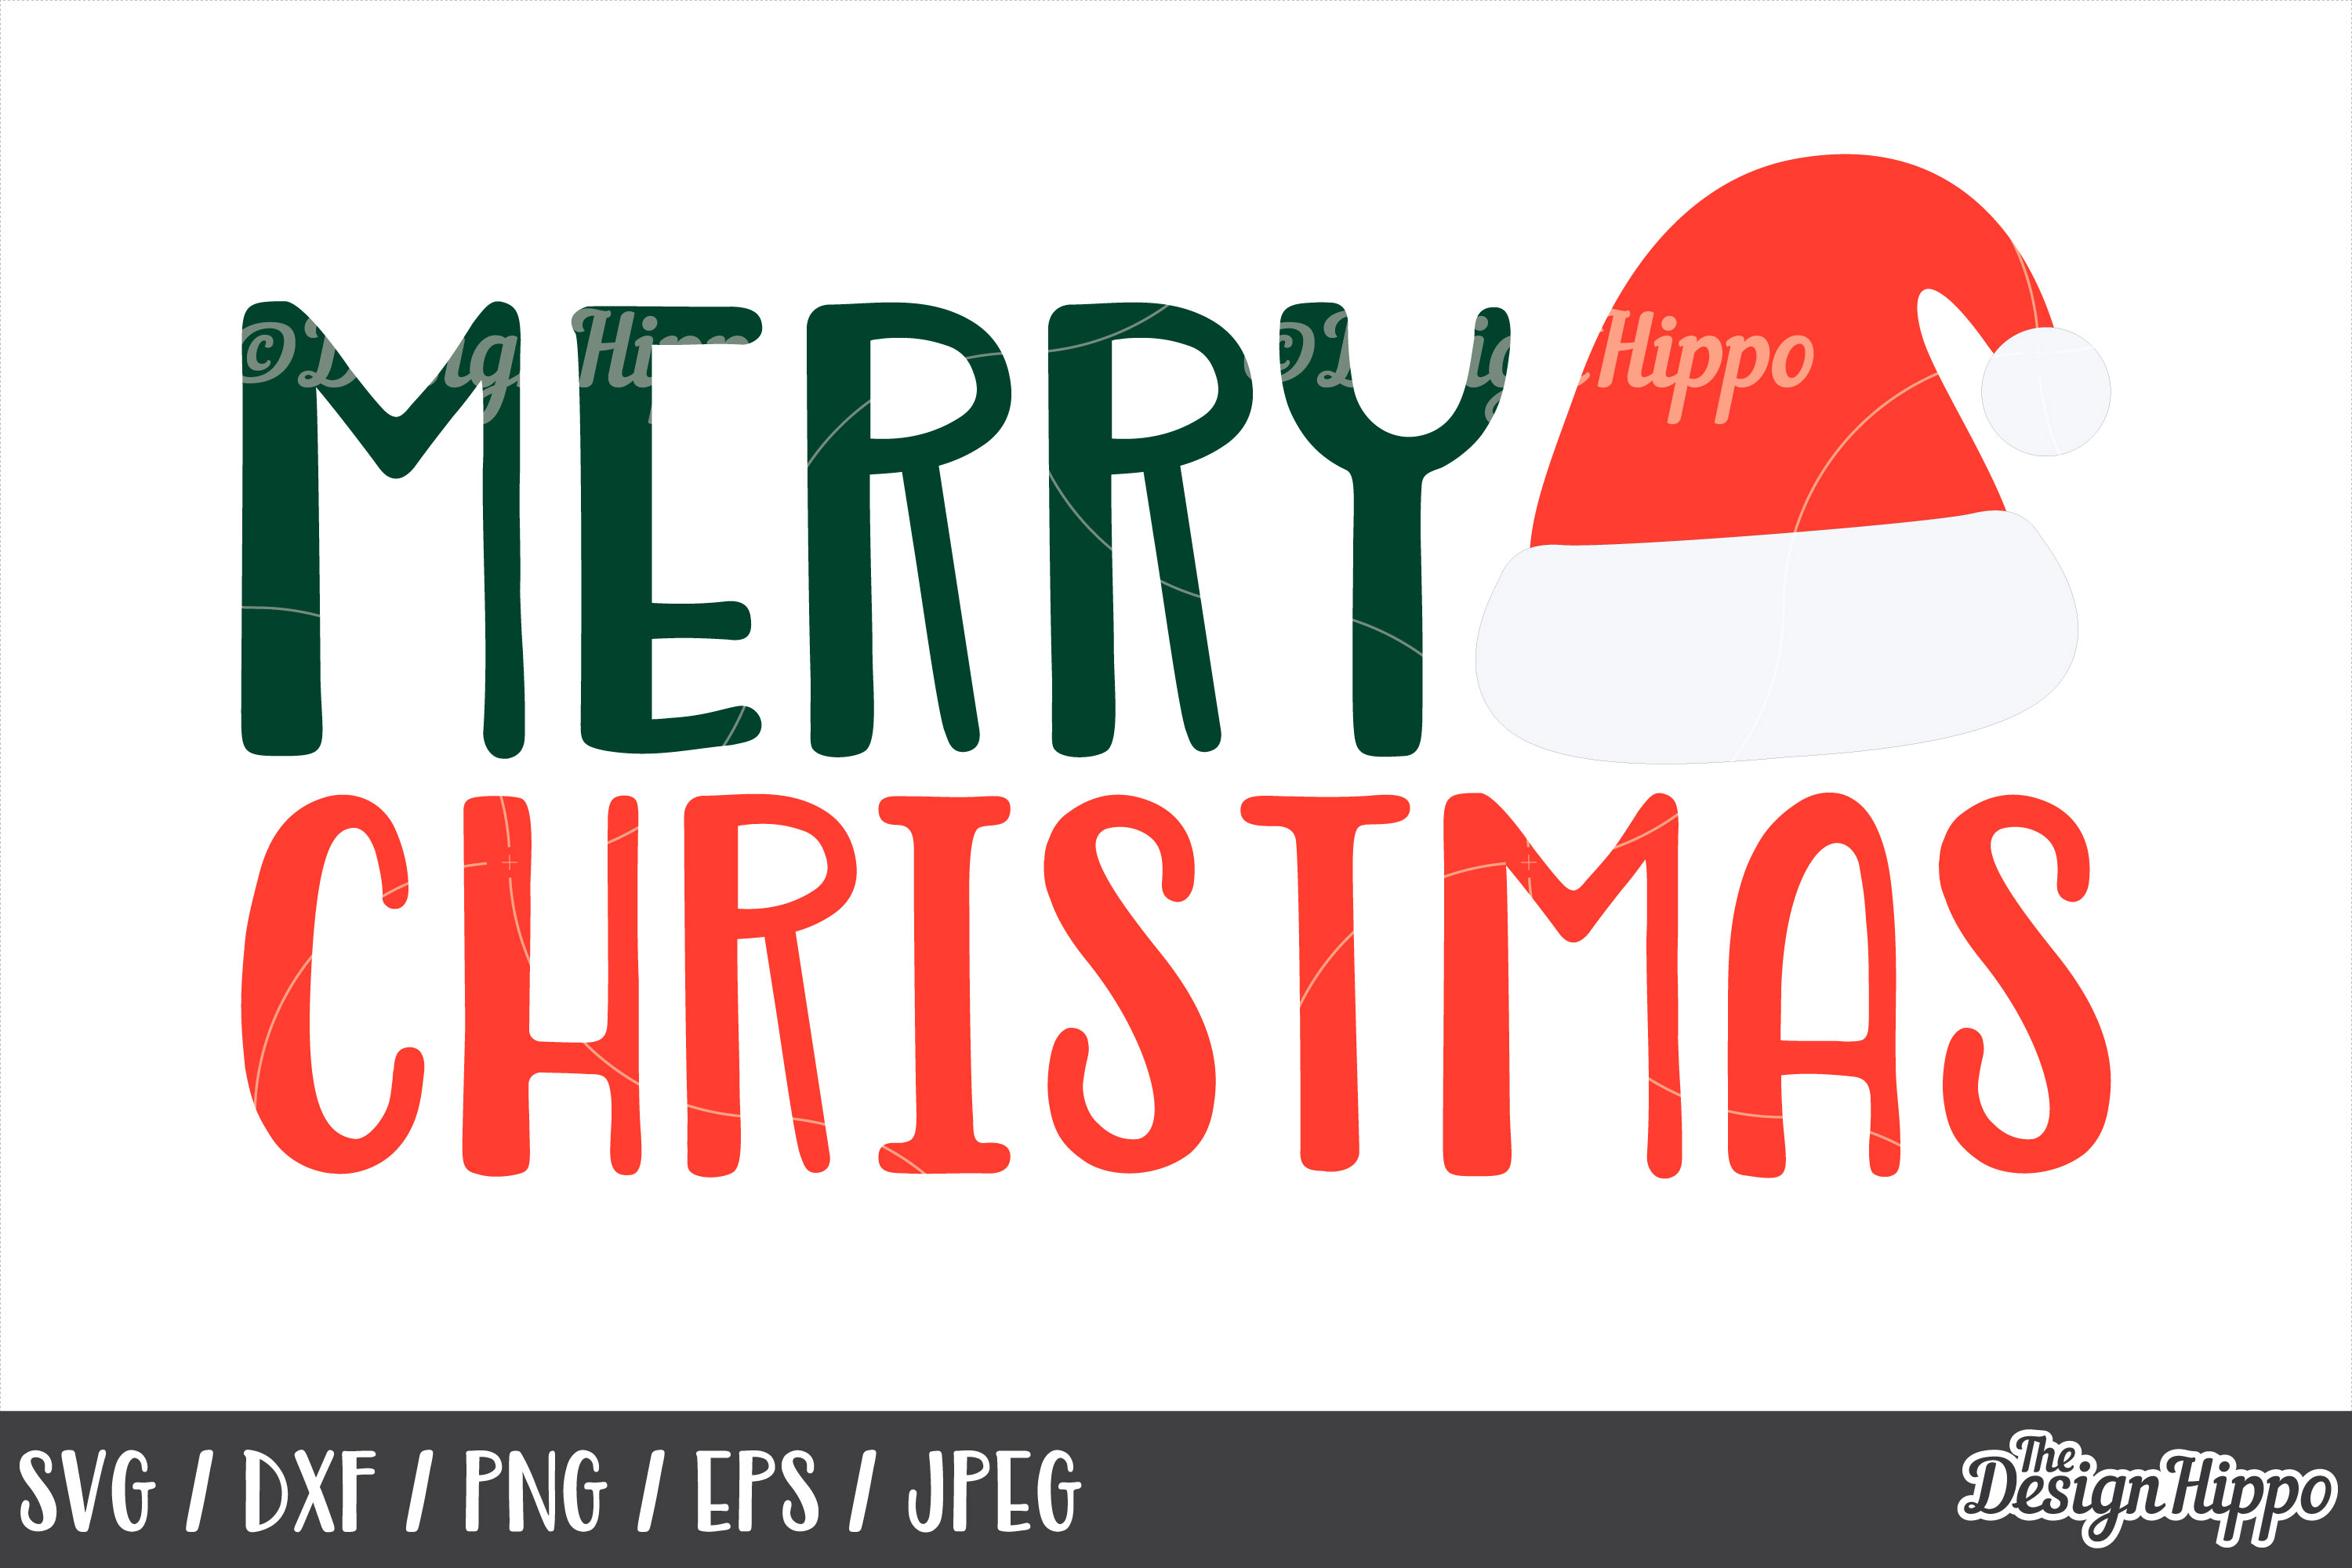 Merry Christmas SVG Bundle, Christmas SVG, PNG, DXF Cut File example image 8